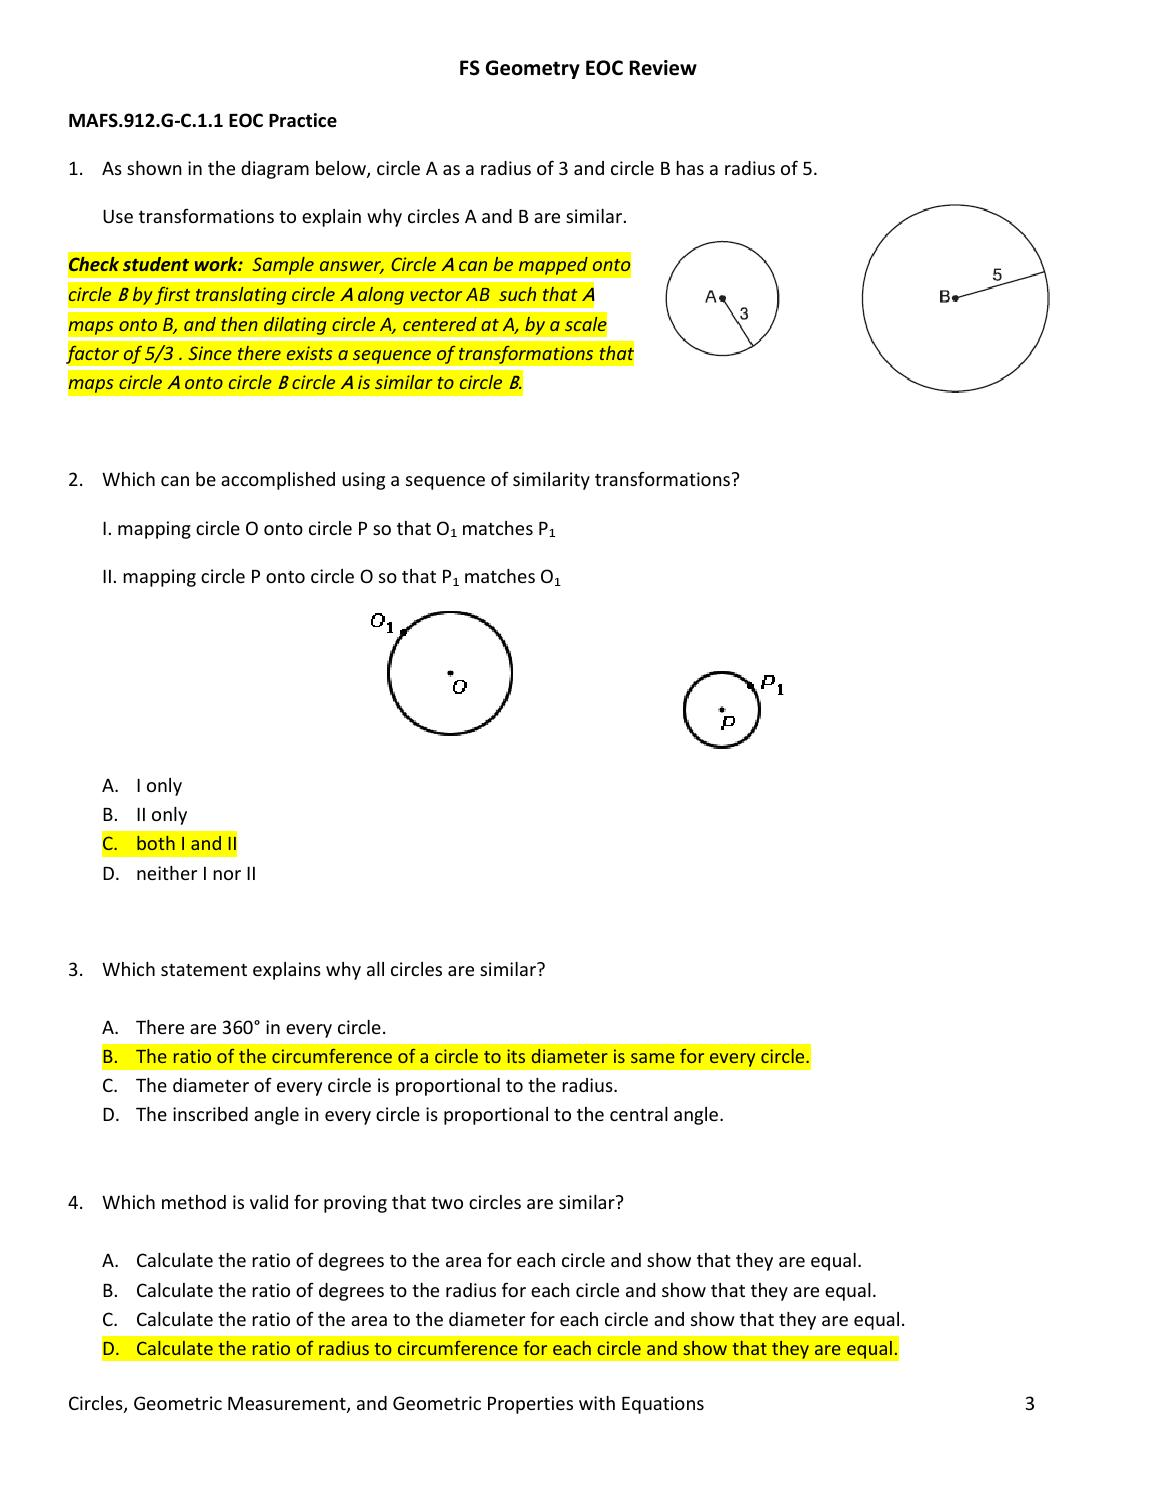 Geometry Eoc Review Answer Sheet 1 By Aaron Galit